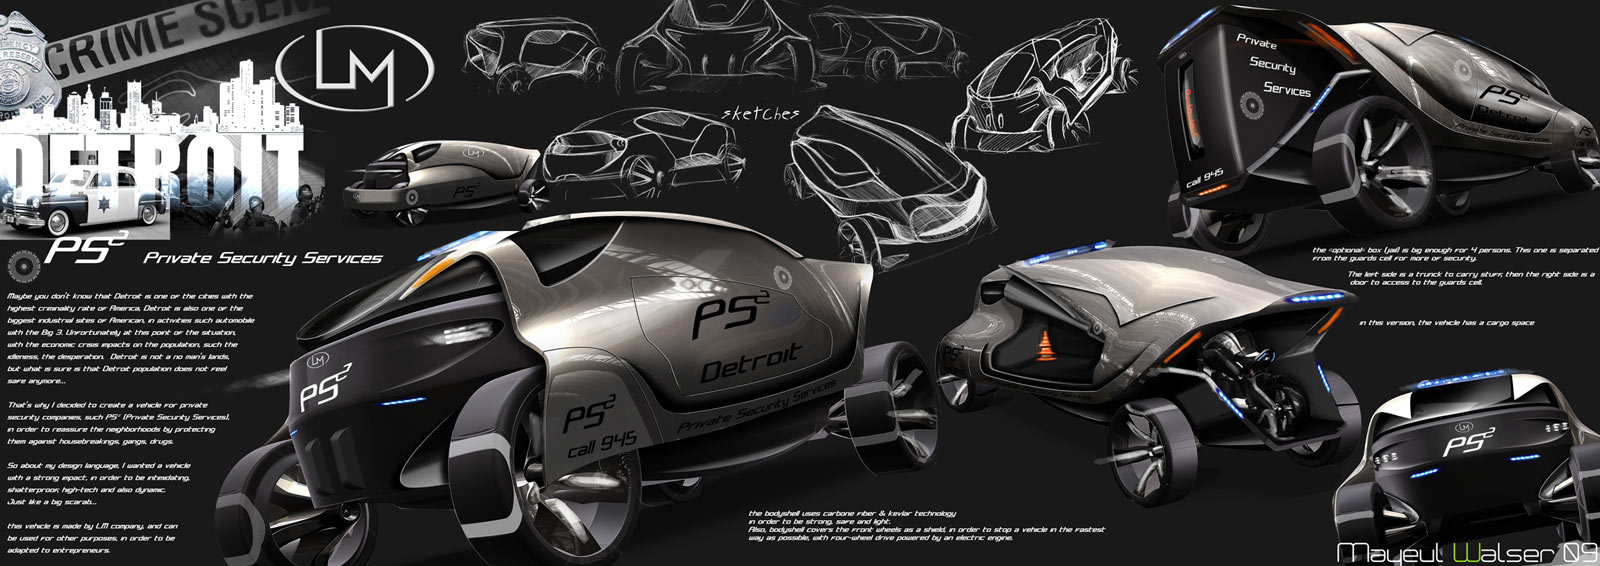 Detroit motors competition the winners car body design for Motor city towing detroit michigan